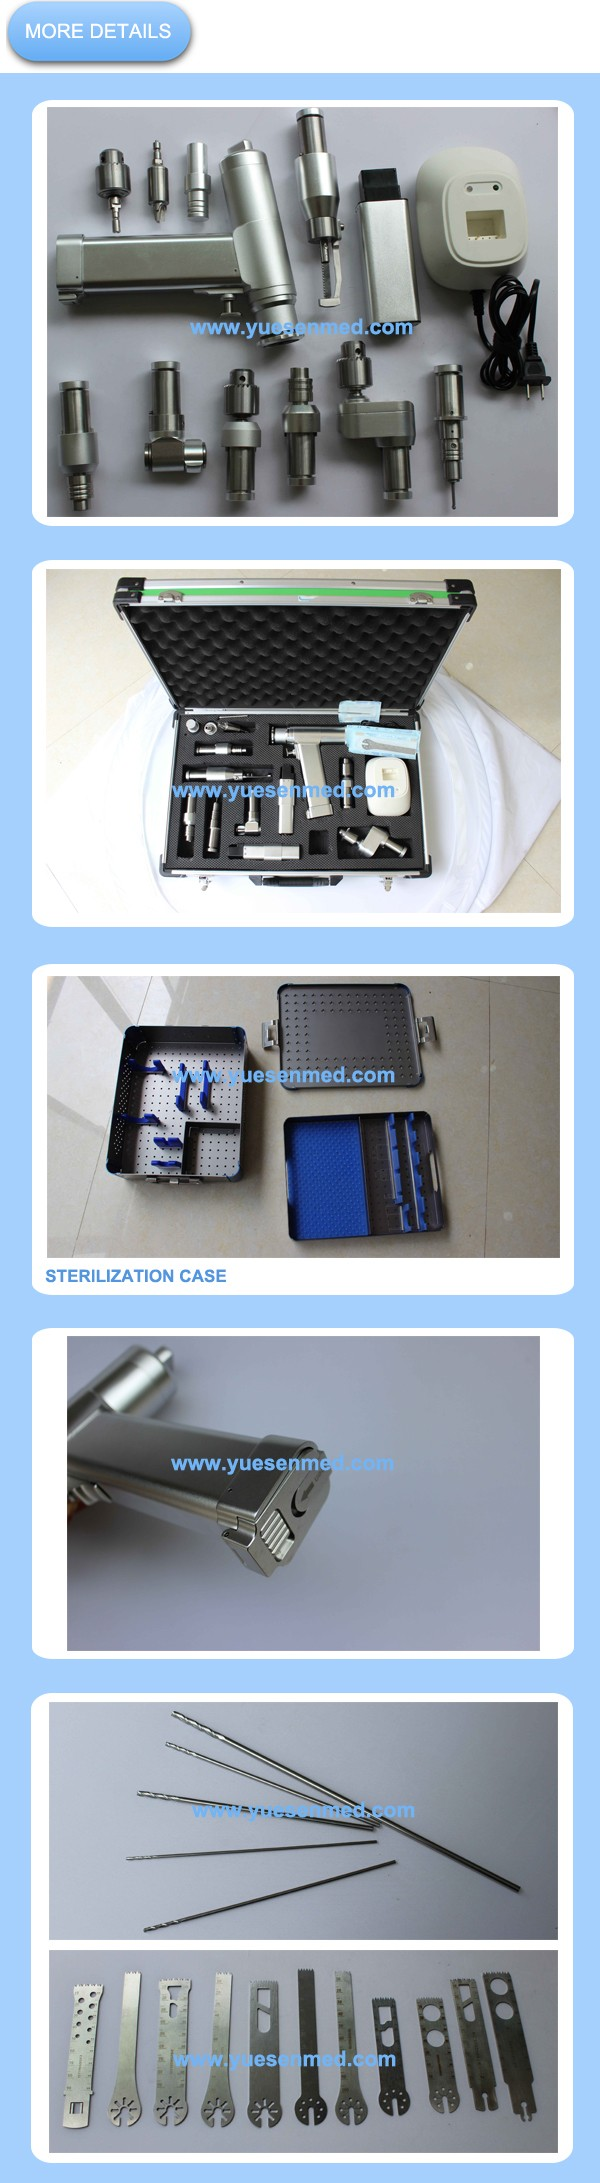 02 More Details of ysdz0501 orthopedic surgery drill and saw.jpg